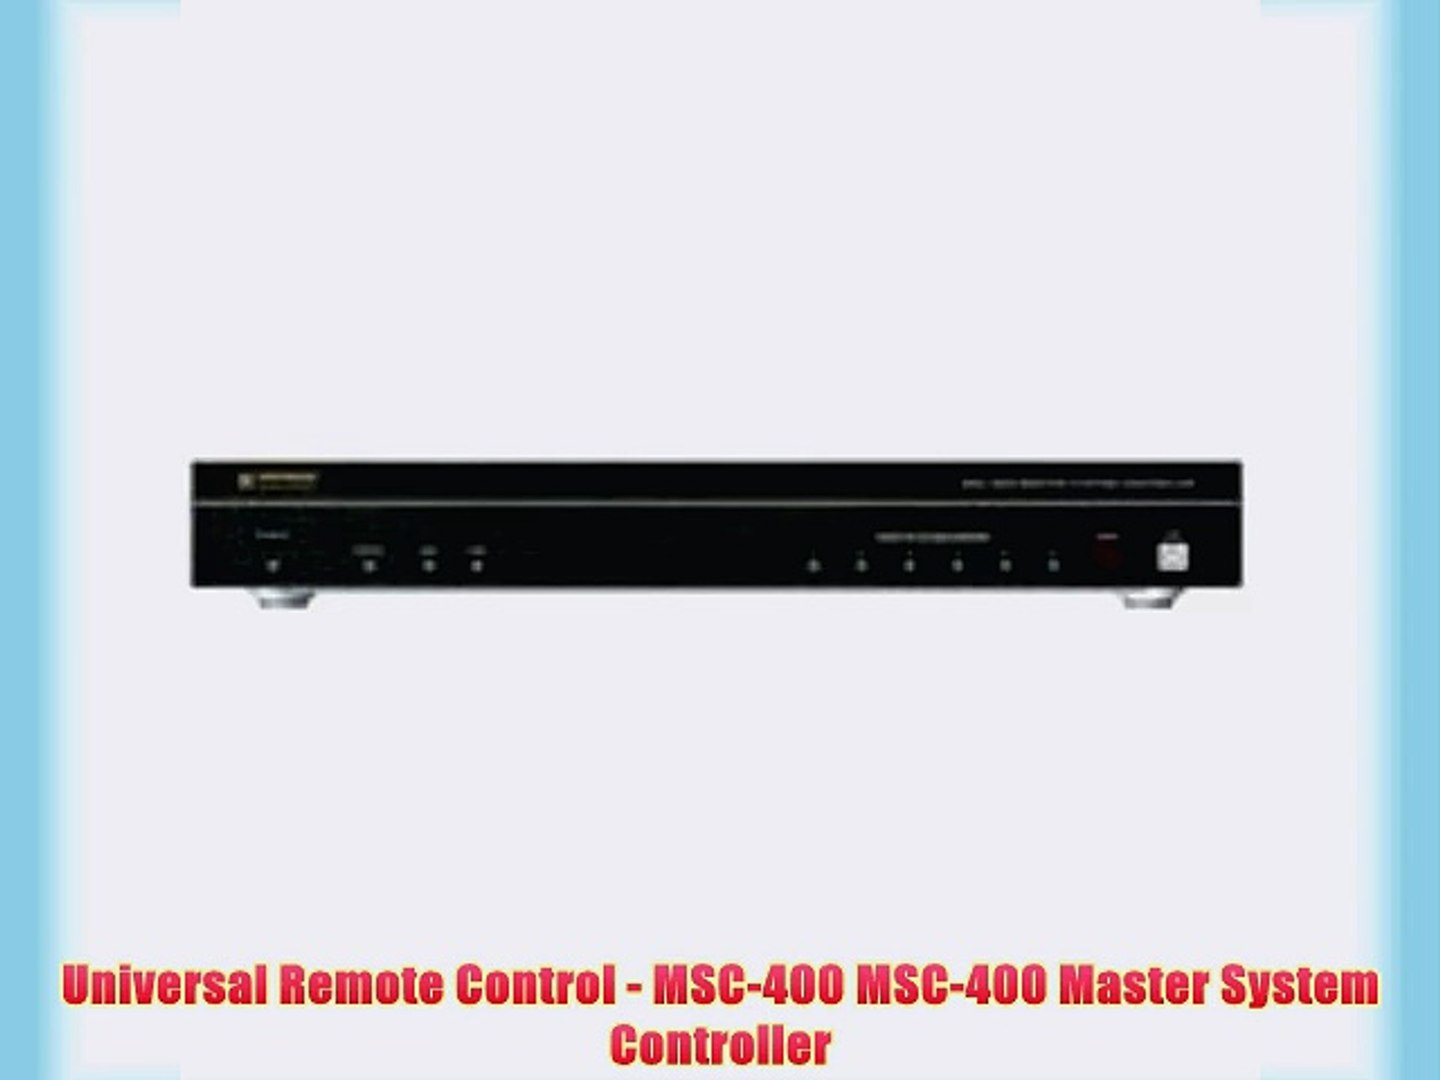 Universal Remote Control Master System Controller MSC-400